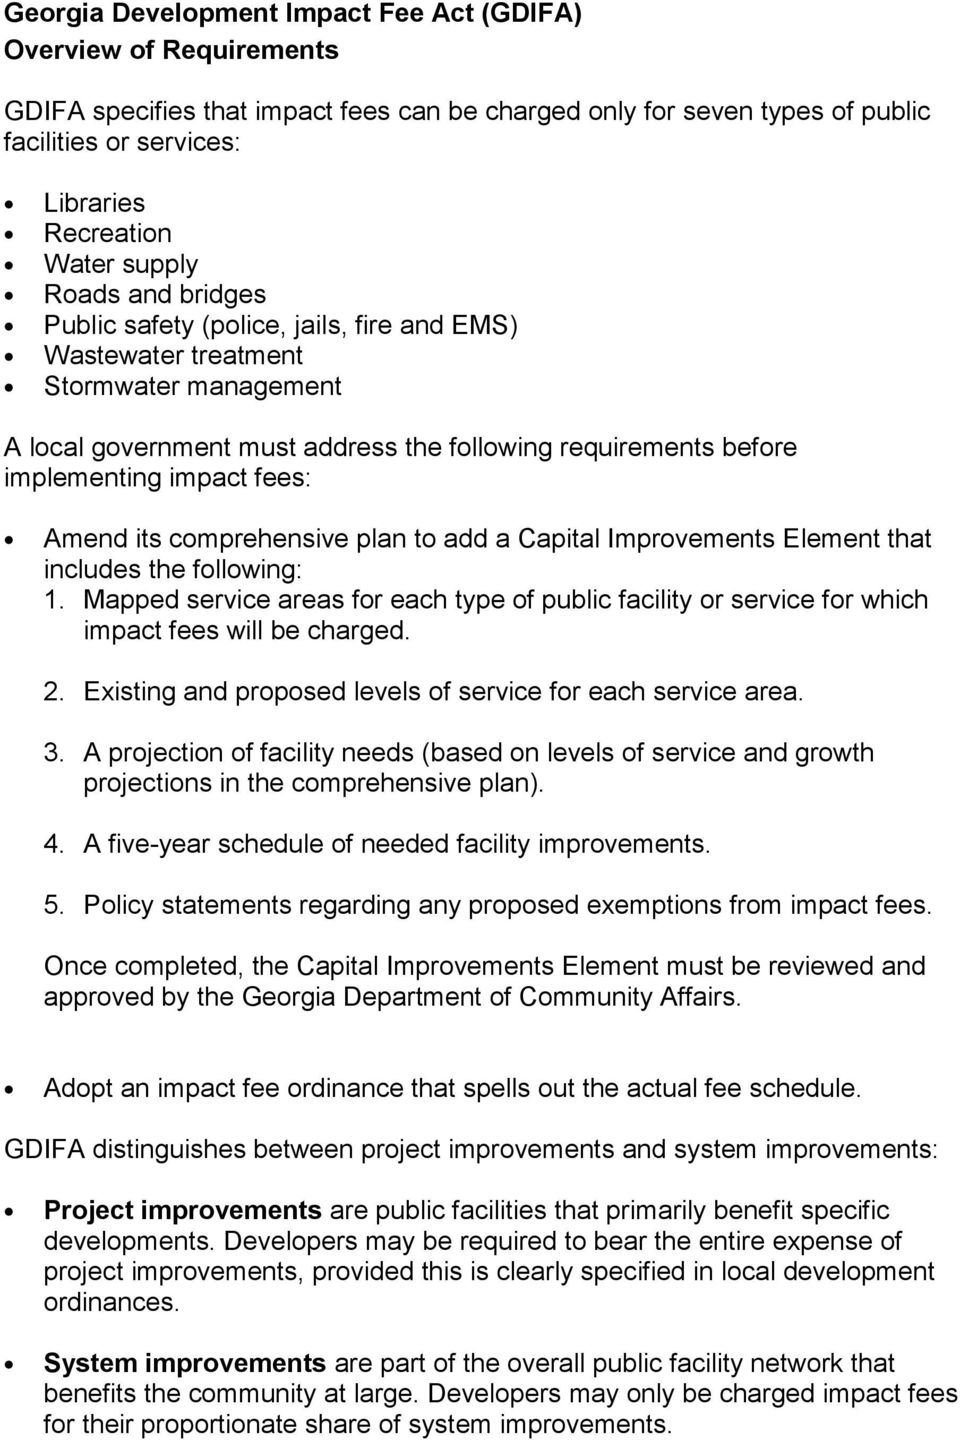 fees: Amend its comprehensive plan to add a Capital Improvements Element that includes the following: 1.